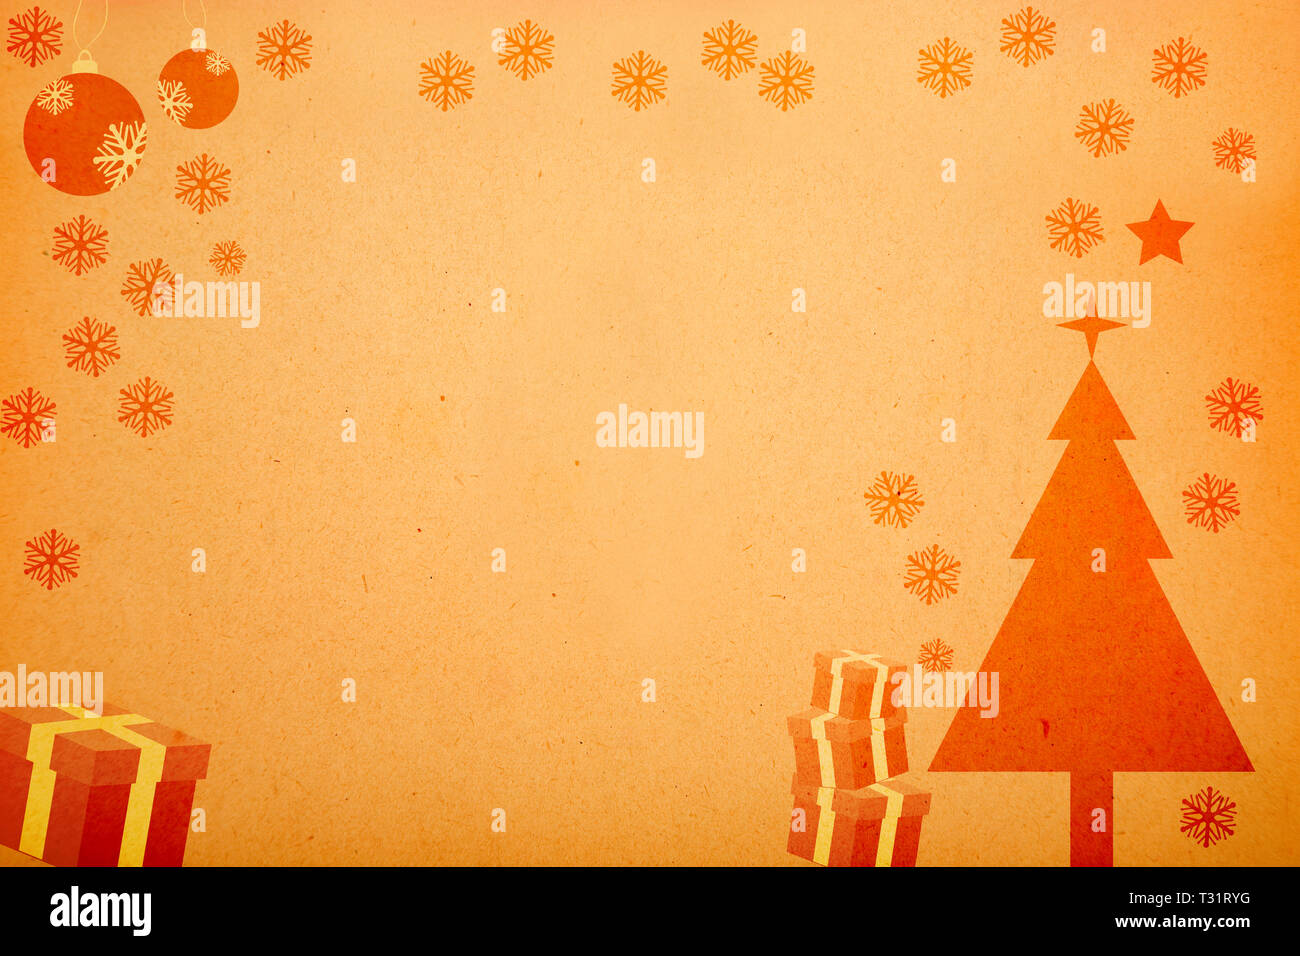 Christmas Ornaments Vector.Christmas Ornaments Vector Design On Old Paper Texture Stock